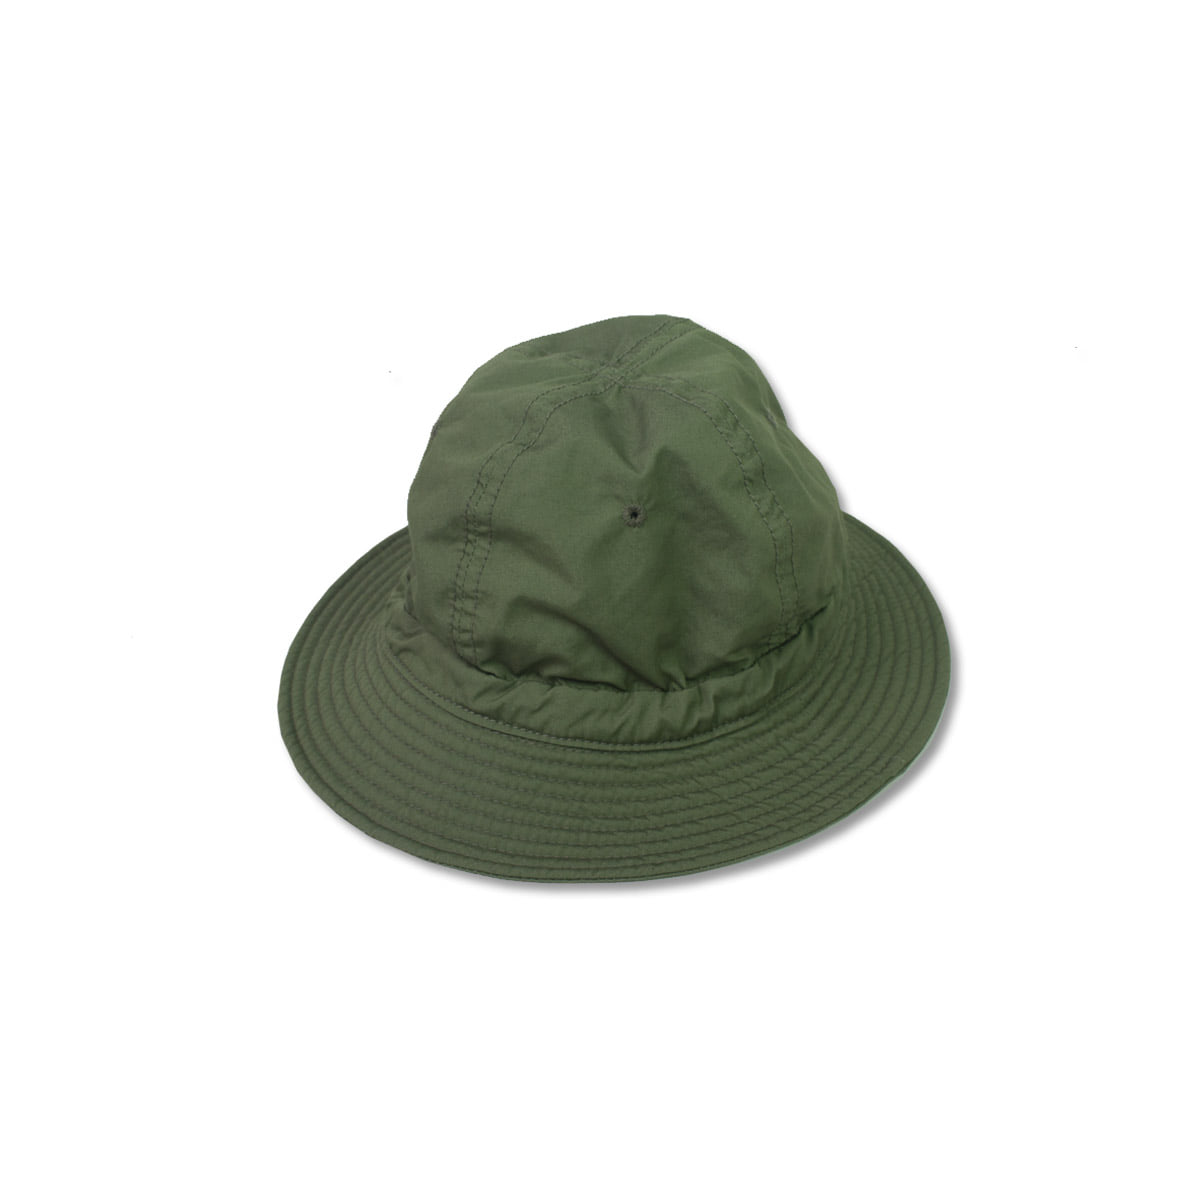 [DECHO] HUNTER HAT -VENTILE- 'OLIVE'